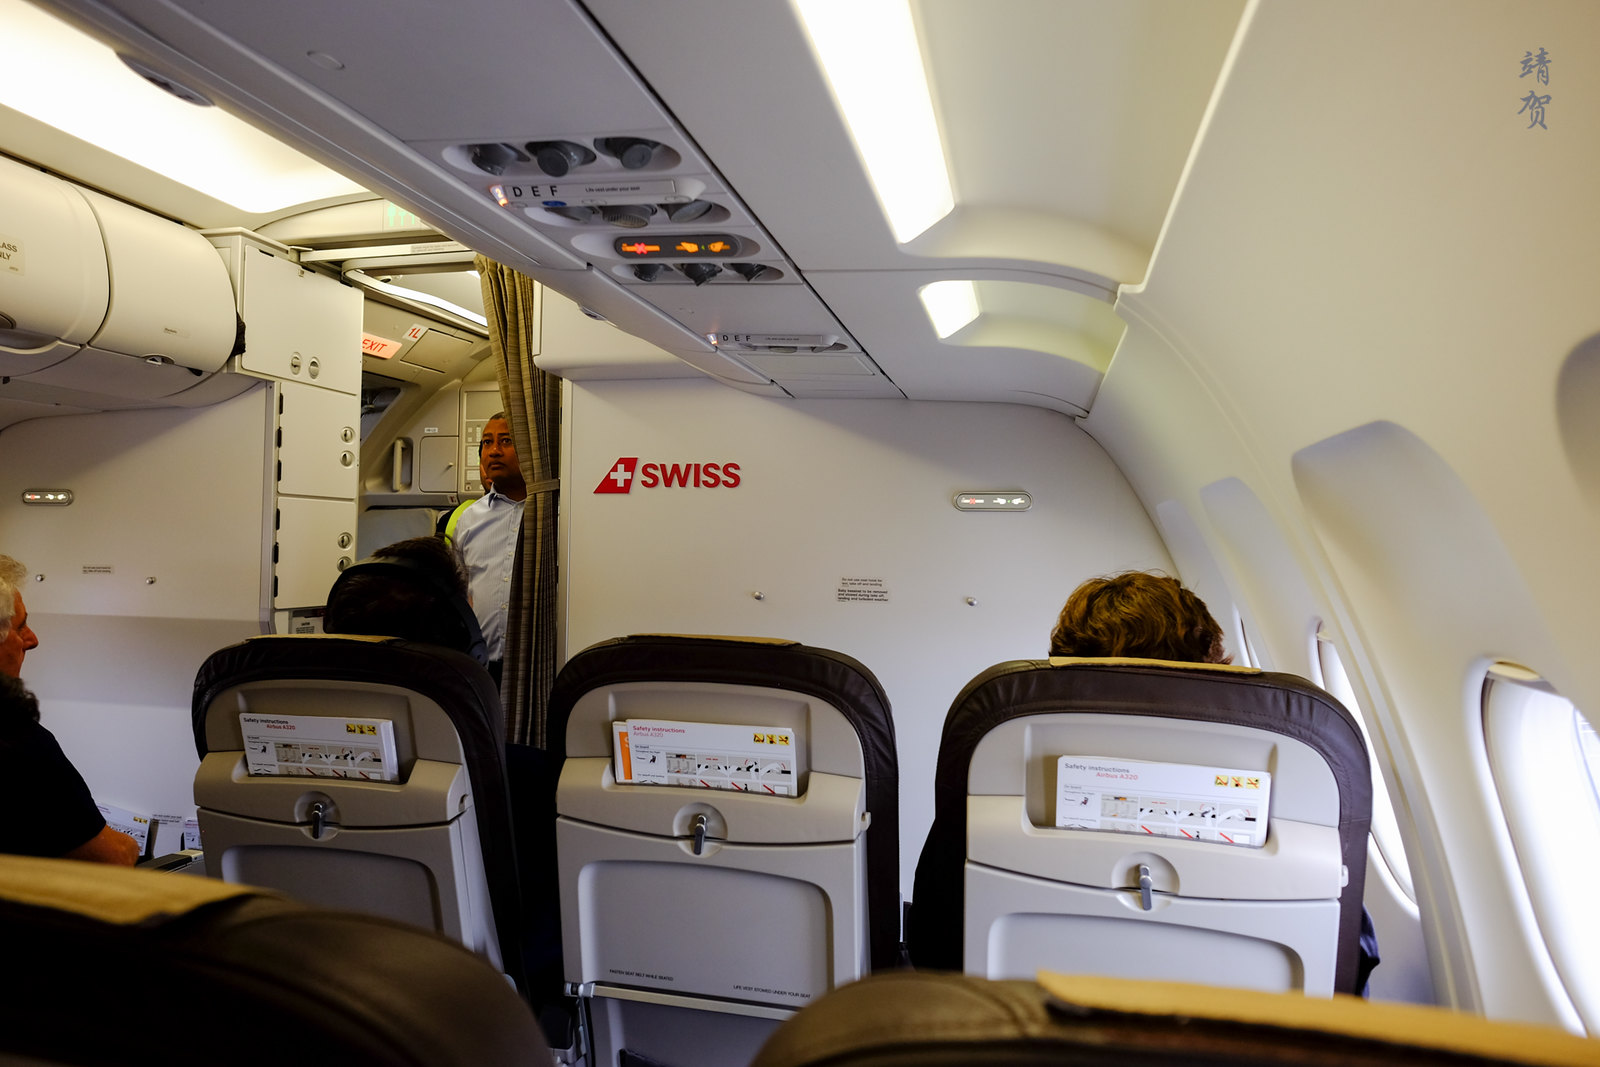 Intra-Europe Business Class cabin